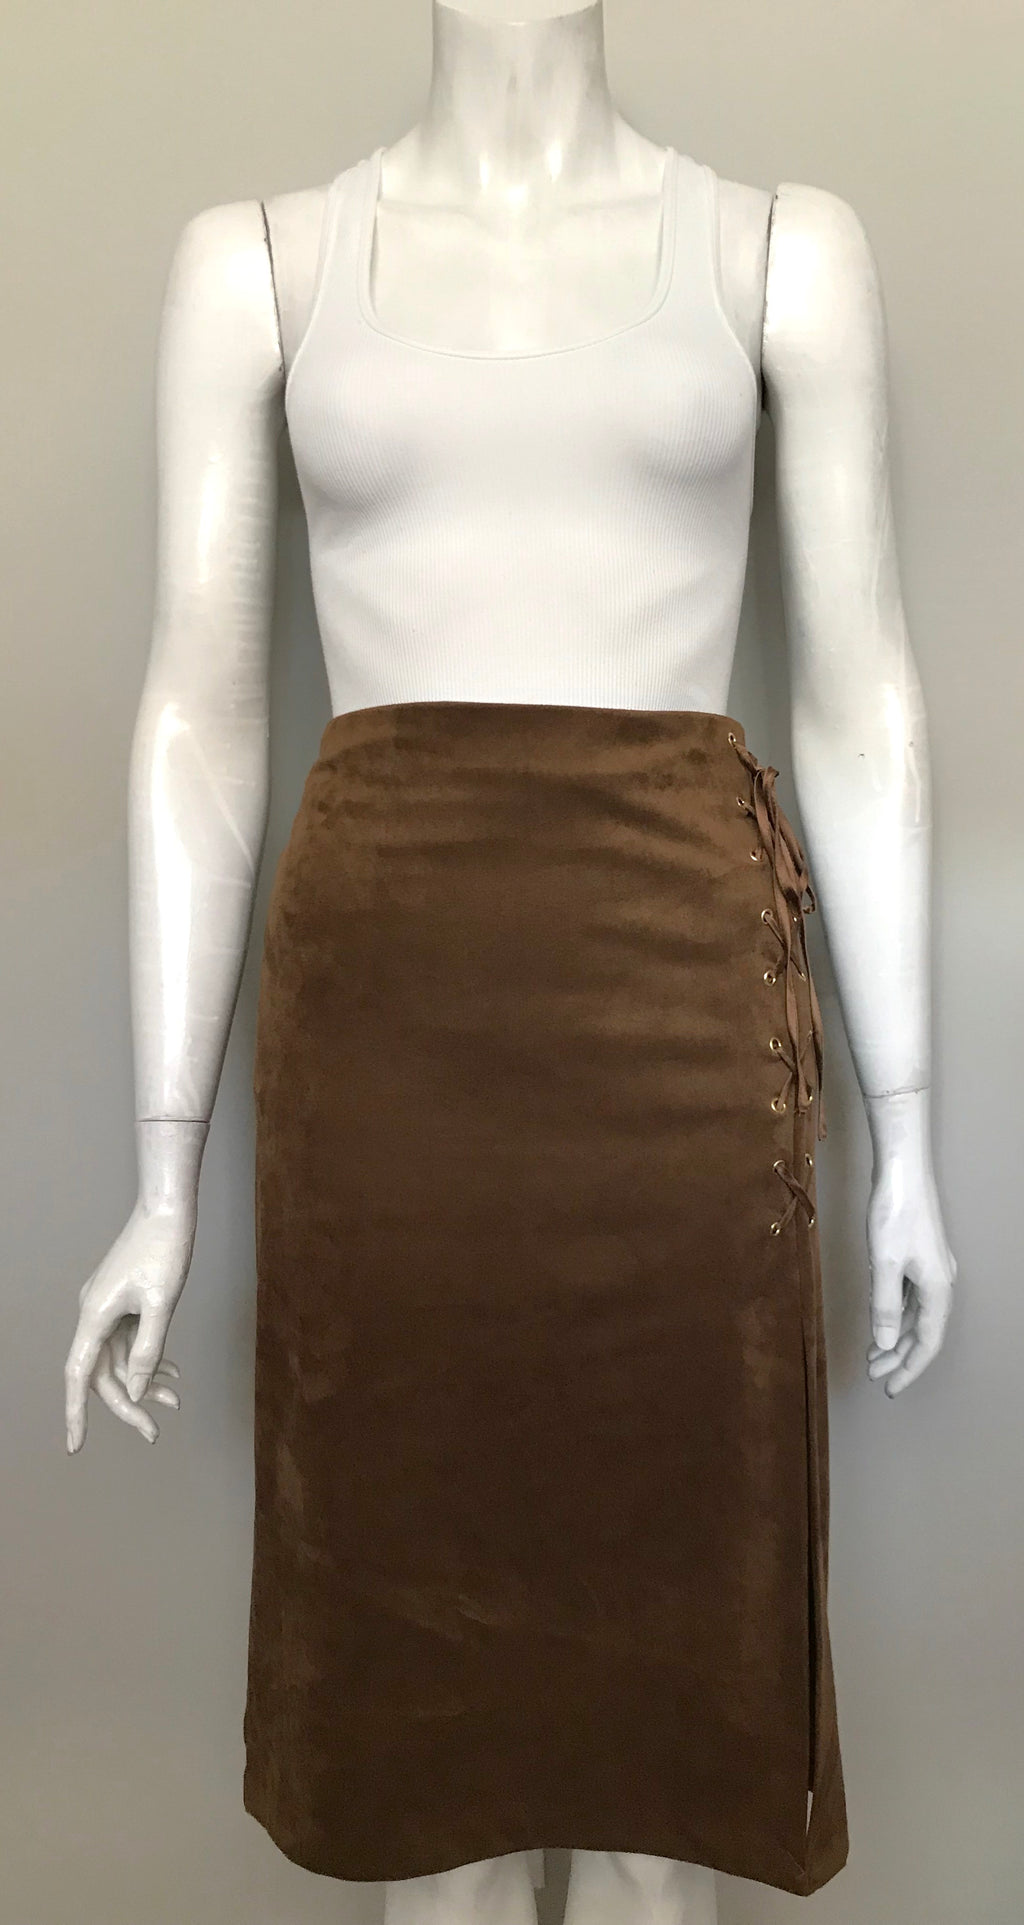 Brand New New York & Company Camel Faux Suede Pencil Skirt Size 14